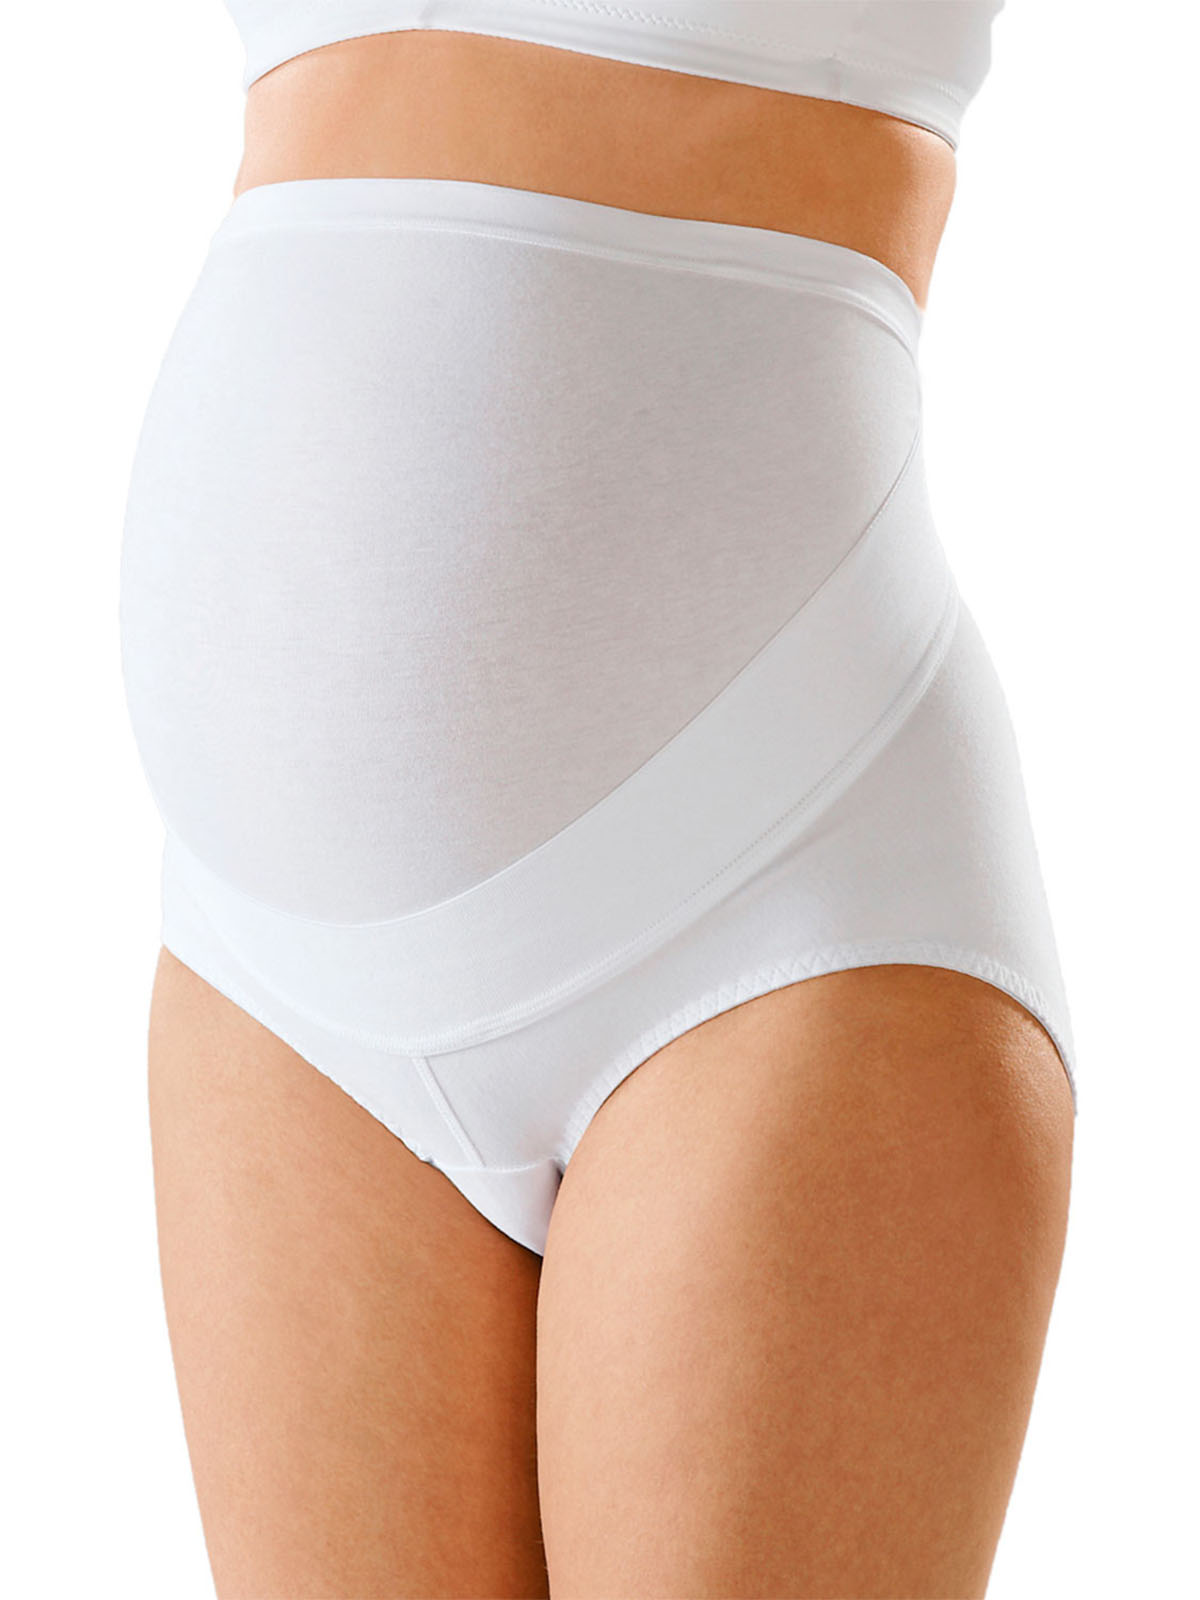 Naturana Maternity Briefs 80485